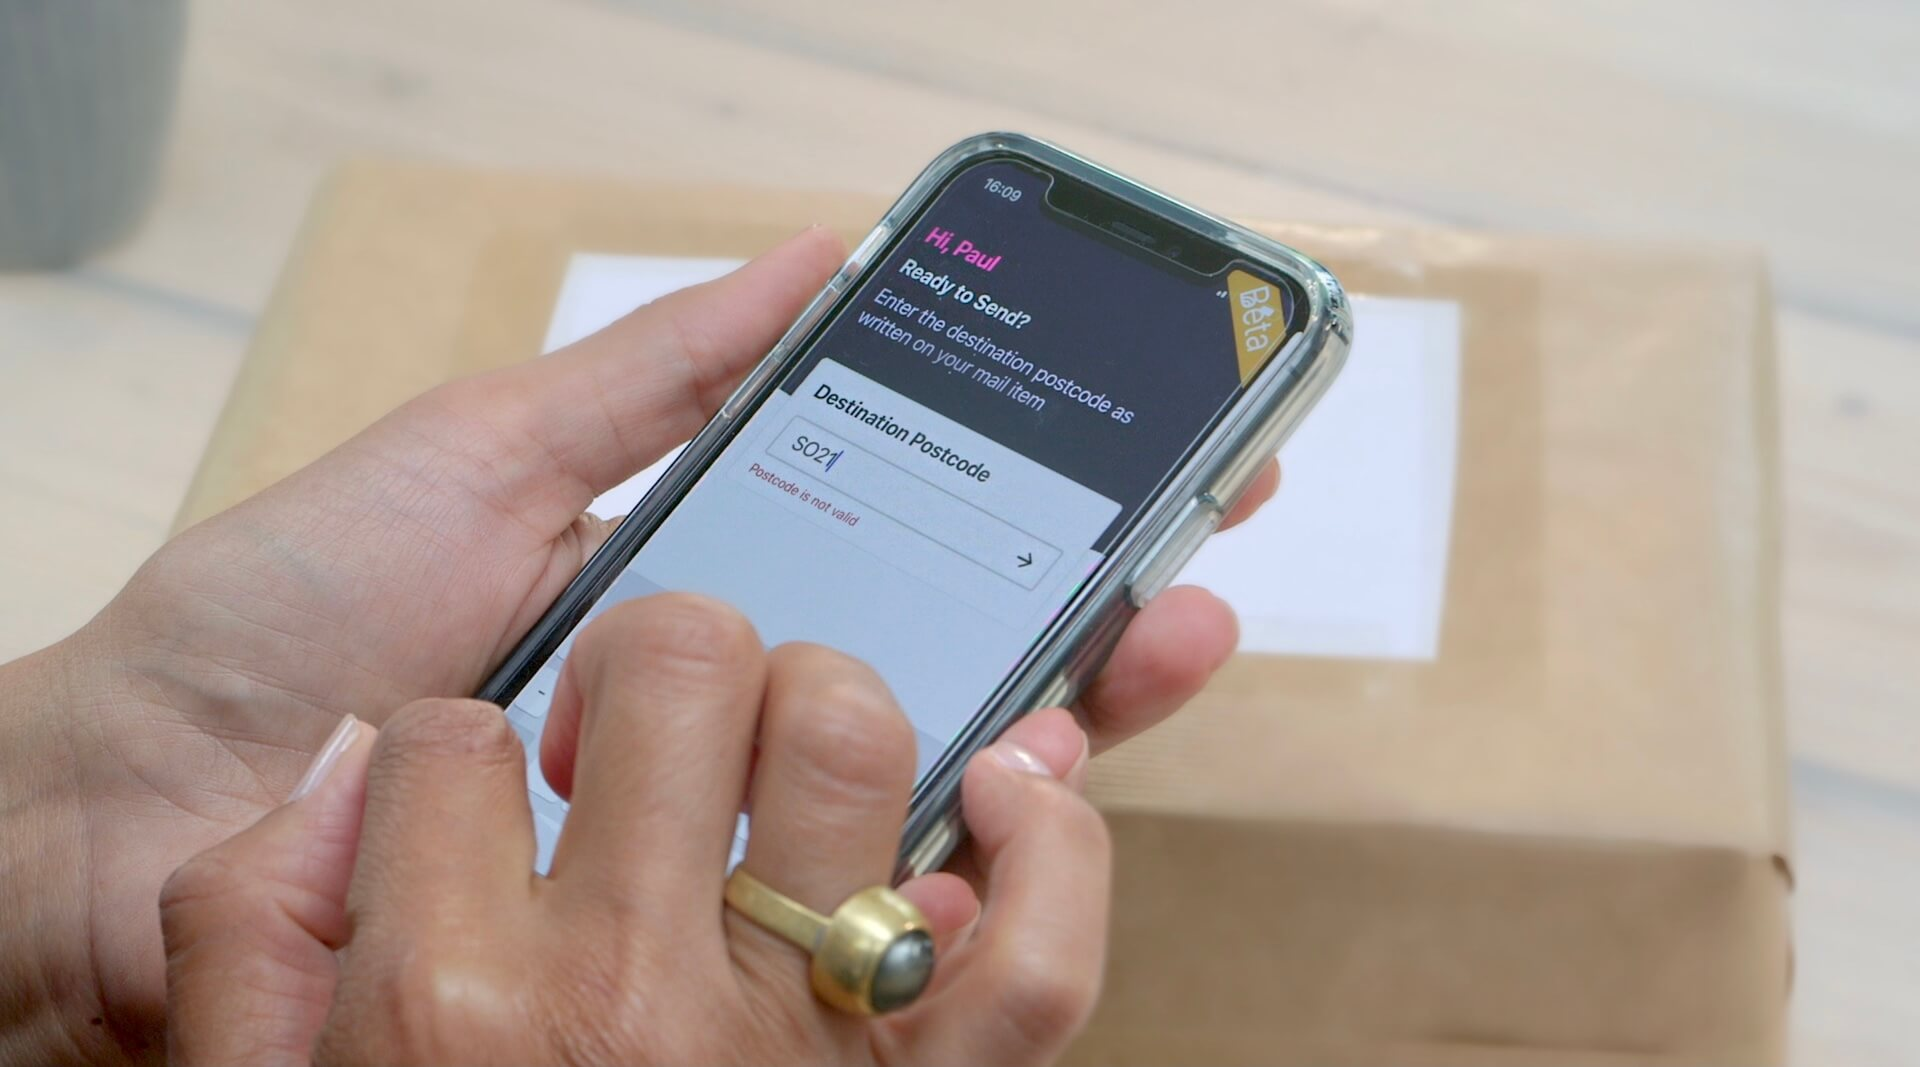 Prime Vision and Stamp Free make postage more convenient for consumers and companies alike